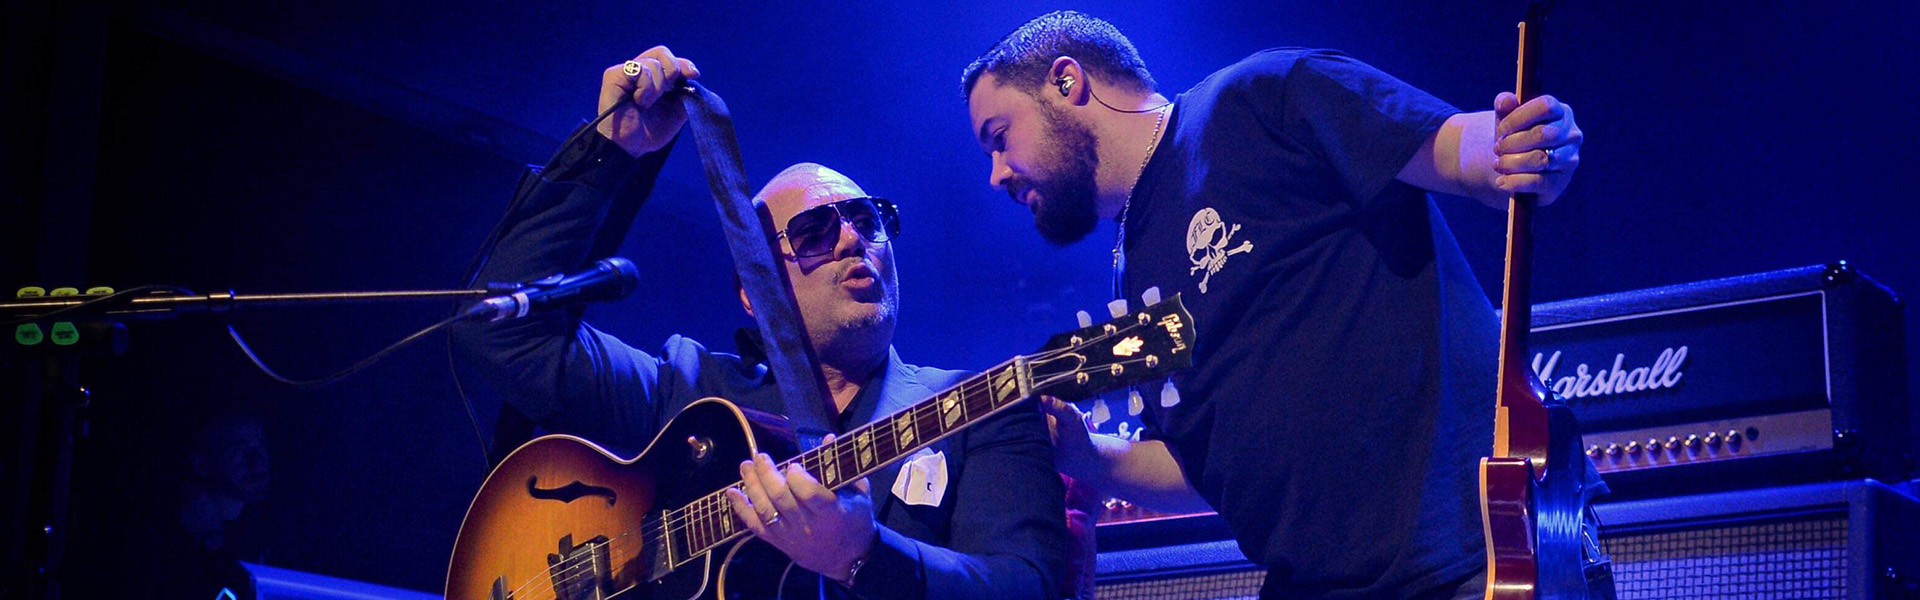 Brendon Riley of Shire Guitars provides technical assistance to Huey of Fun Lovin' Criminals. Pic courtesy of Perry Smylie Photography